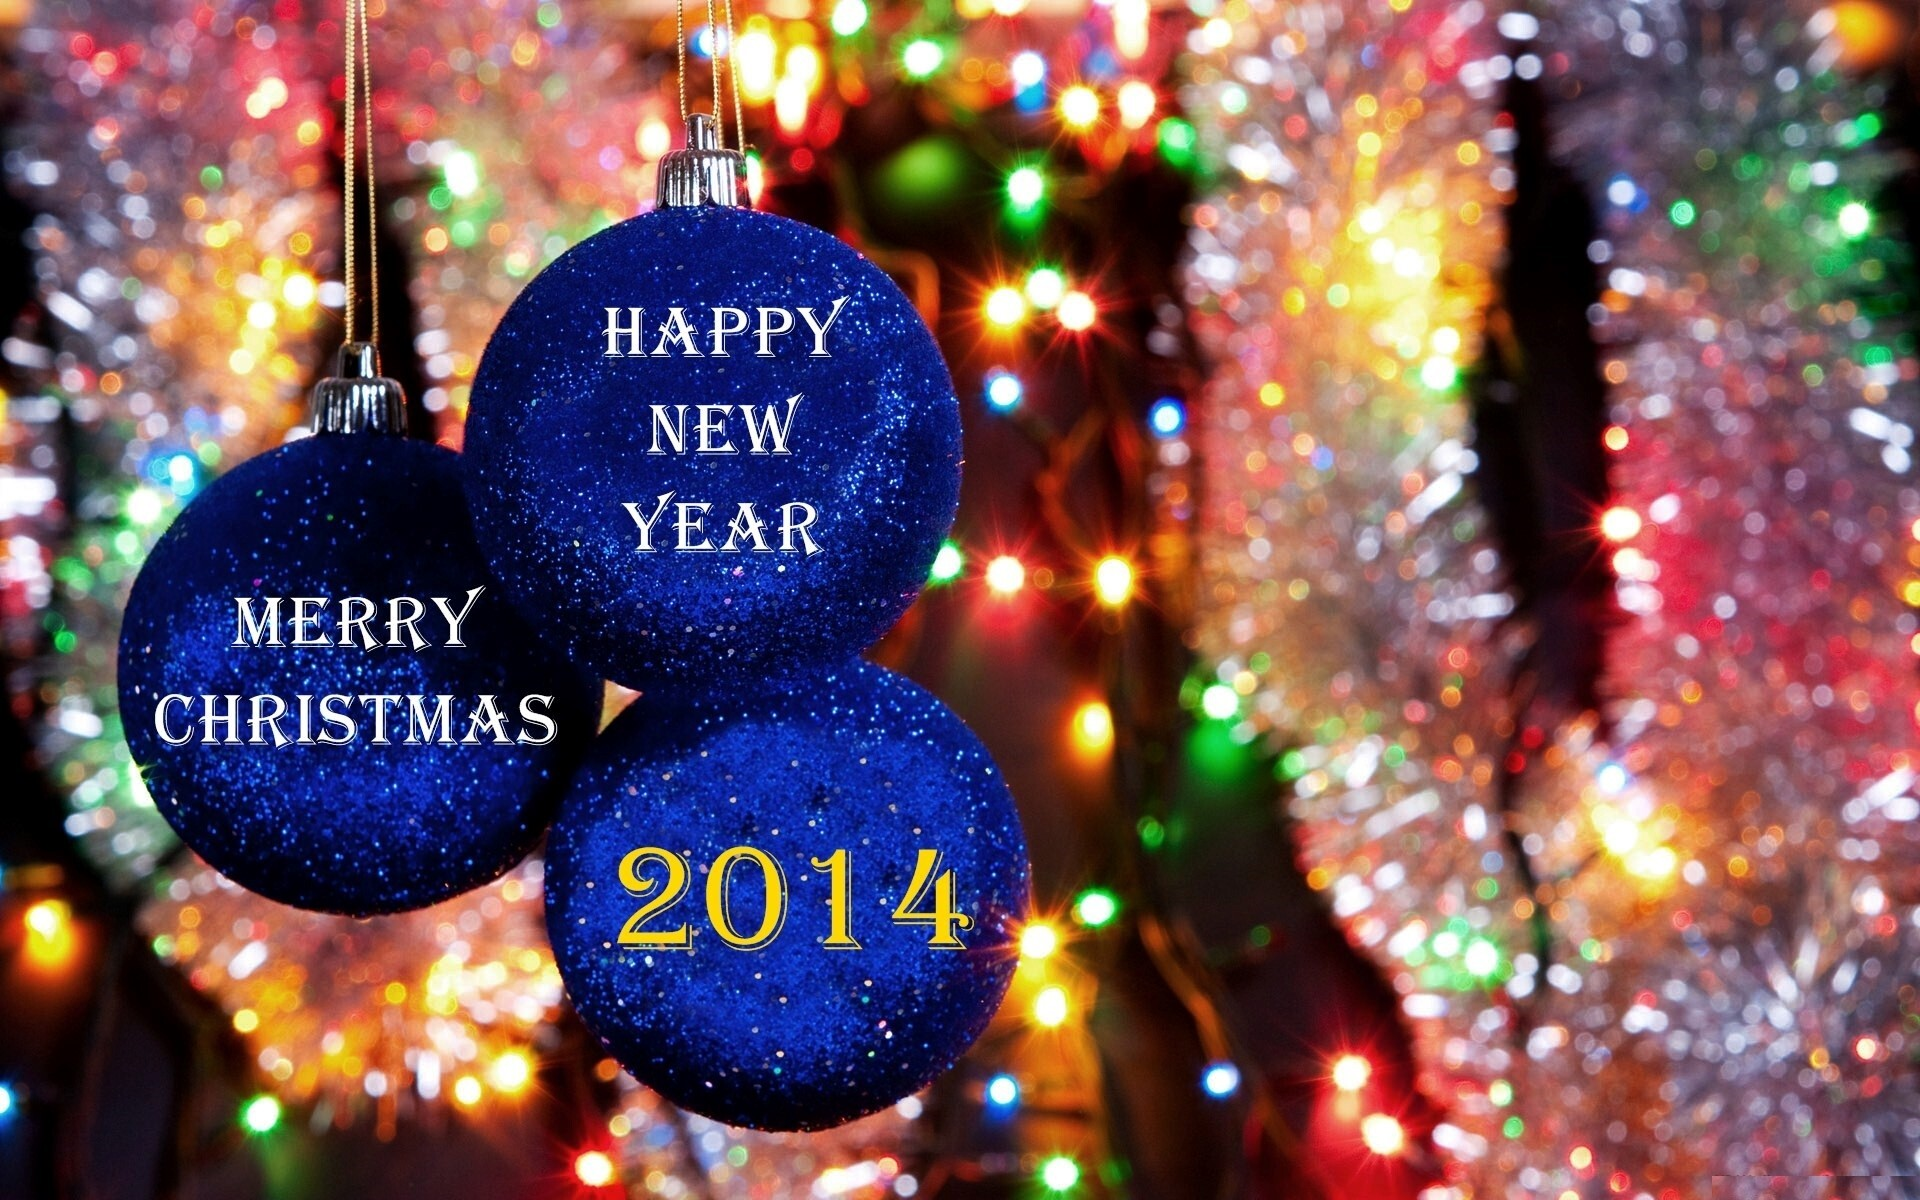 Merry Christmas 2014 New Year Wallpaper Download